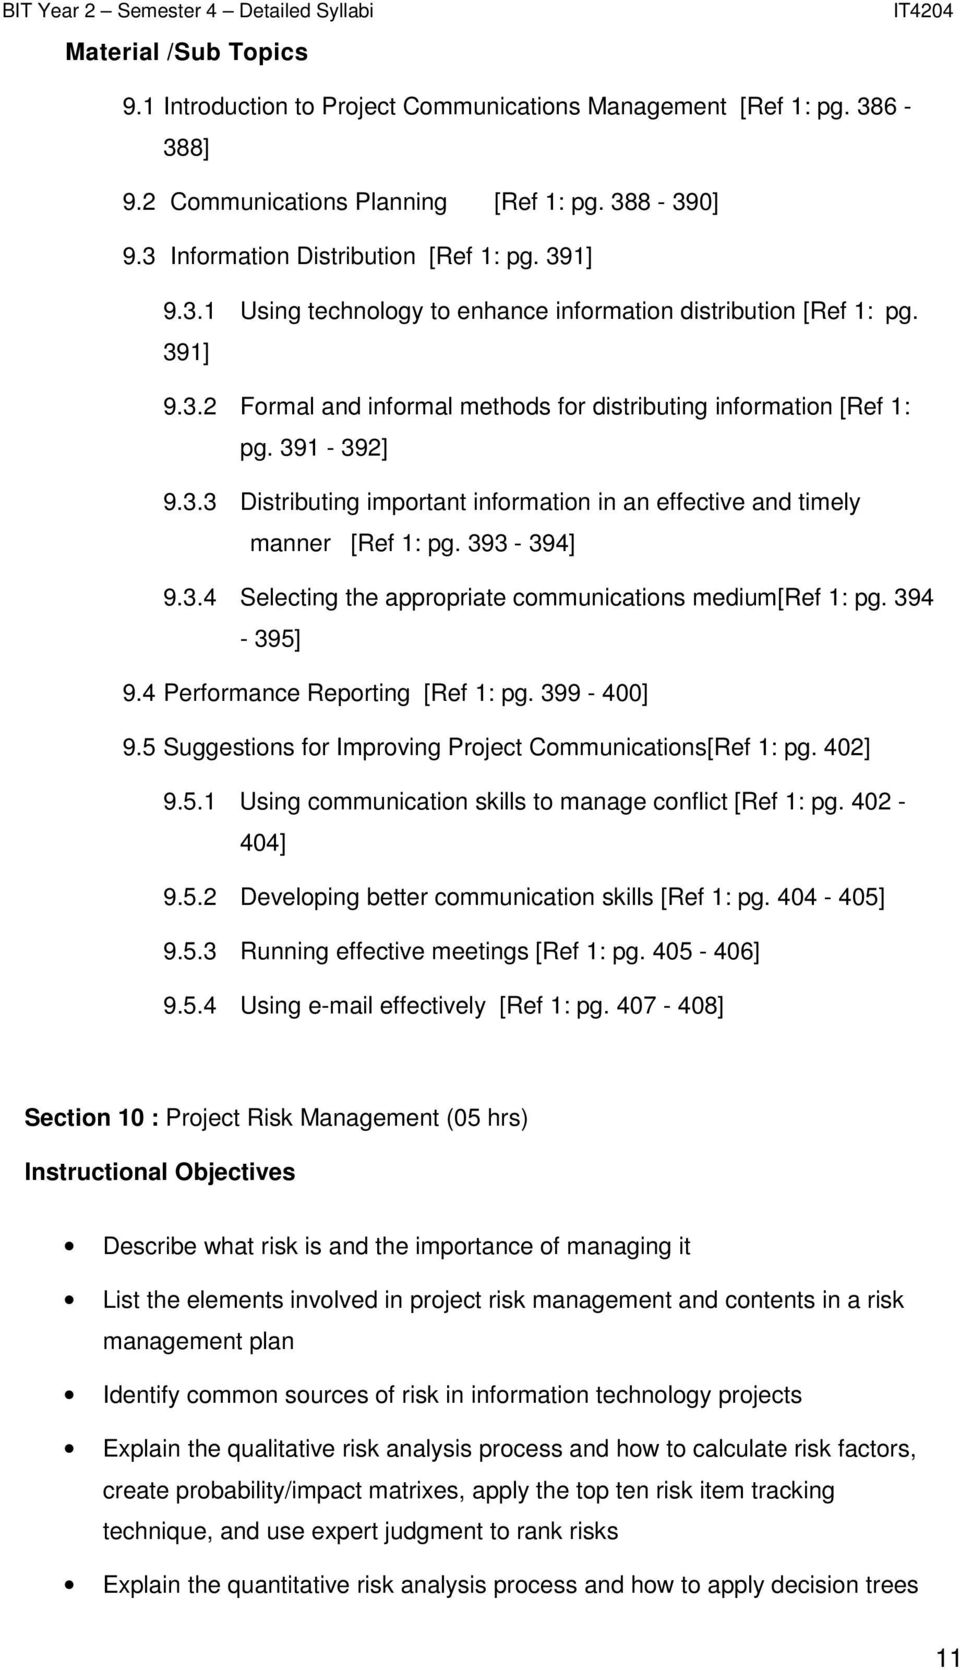 394-395] 9.4 Performance Reporting [Ref 1: pg. 399-400] 9.5 Suggestions for Improving Project Communications[Ref 1: pg. 402] 9.5.1 Using communication skills to manage conflict [Ref 1: pg. 402-404] 9.